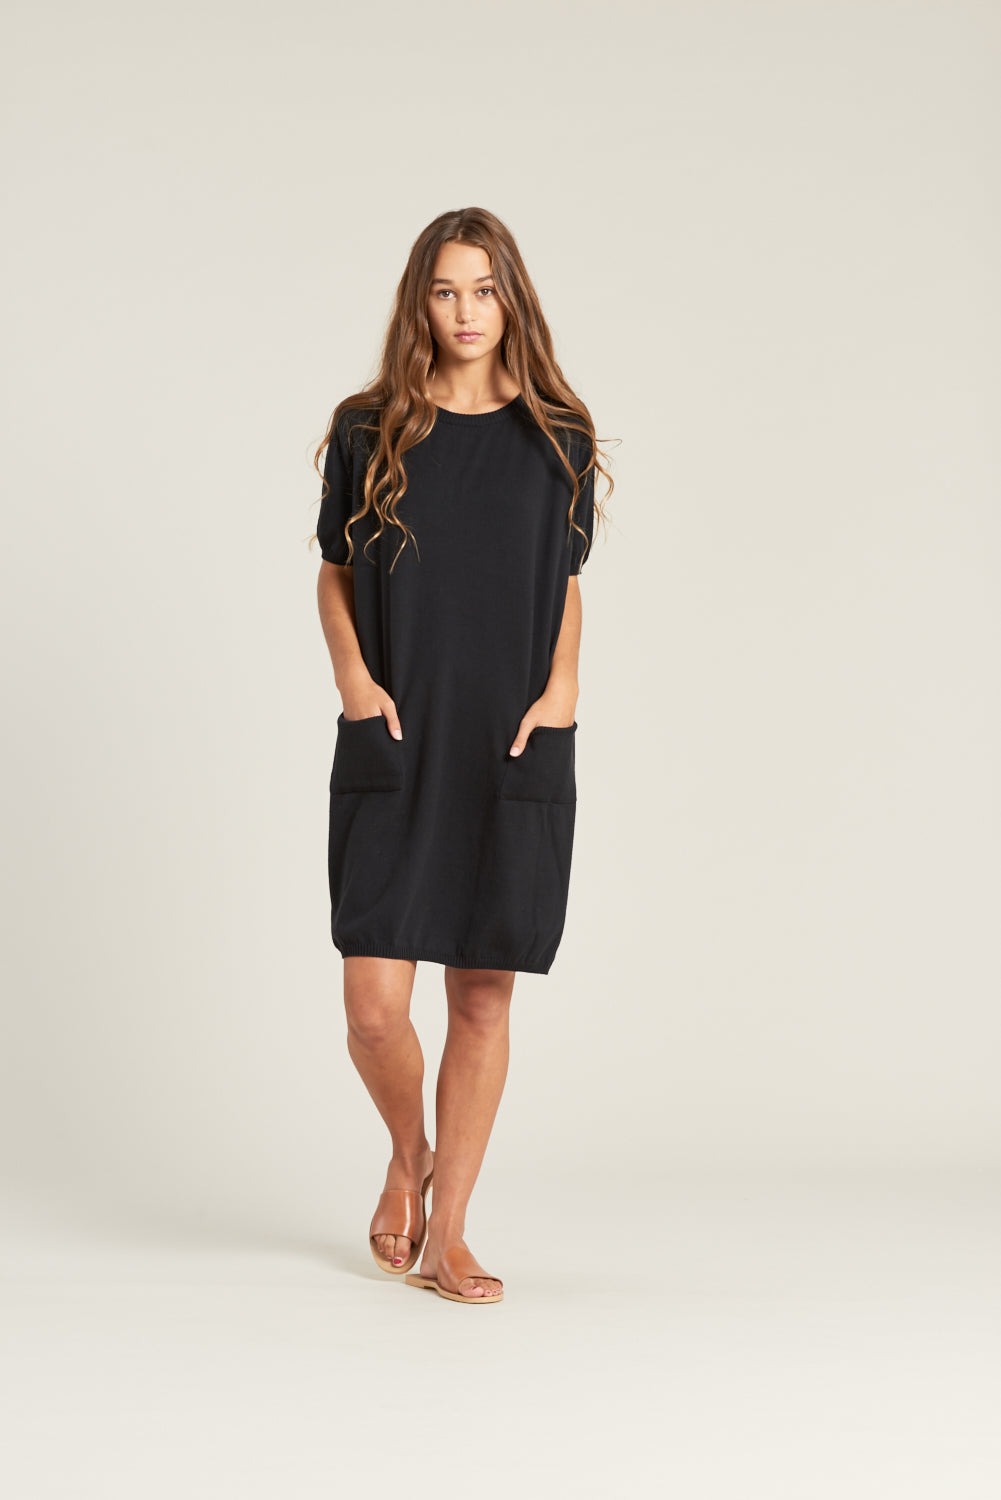 Organic cotton dress with pockets made in New Zealand